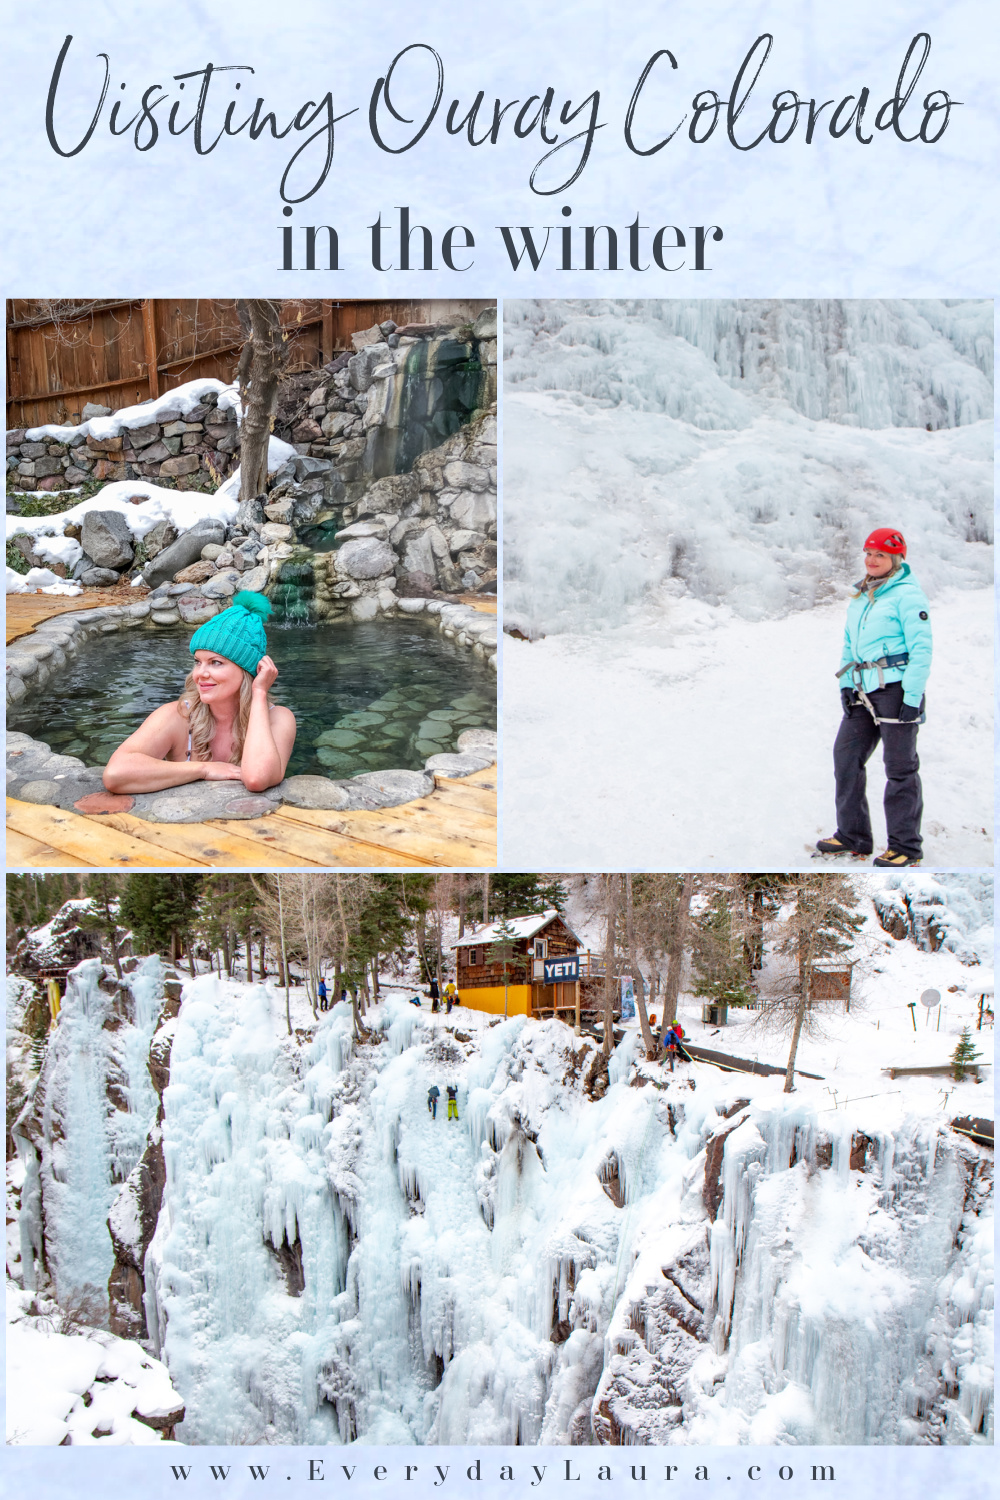 Visiting Ouray Colorado in the winter